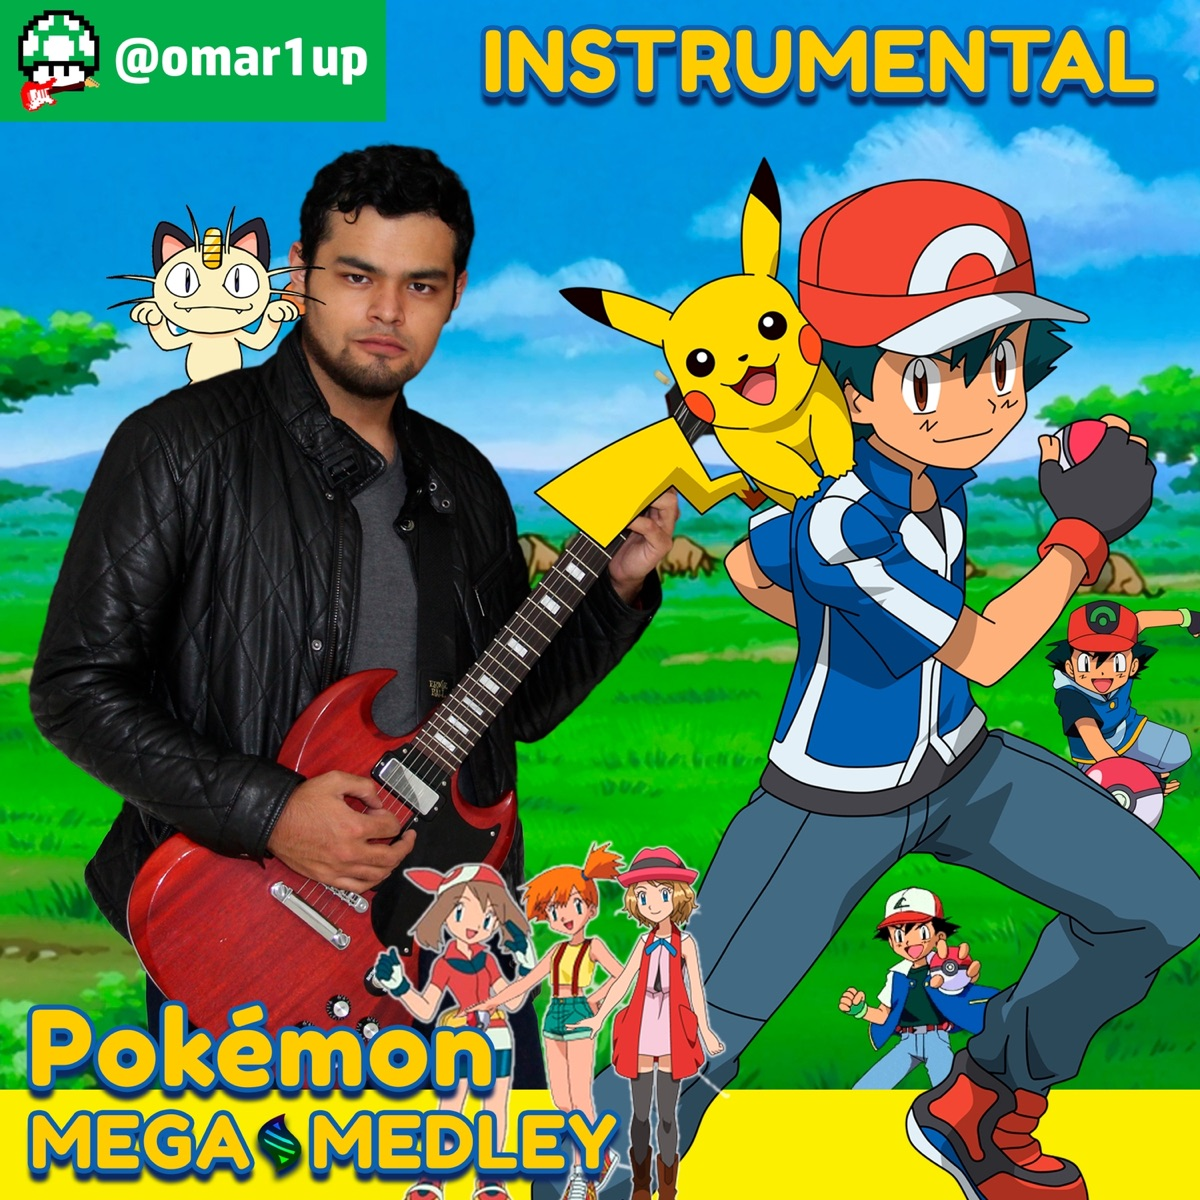 Pokémon Mega Medley Gotta Catchem All  Pokémon Johto  Pokémon World  Unbeatable  Born to Be a Winner  Believe in Me  I Wanna Be a Hero  V-volt  This Dream  We Will Carry On  Black and White  XYZ  We Will be Heroes  Battle Cry Instrument - EP omar1up CD cover